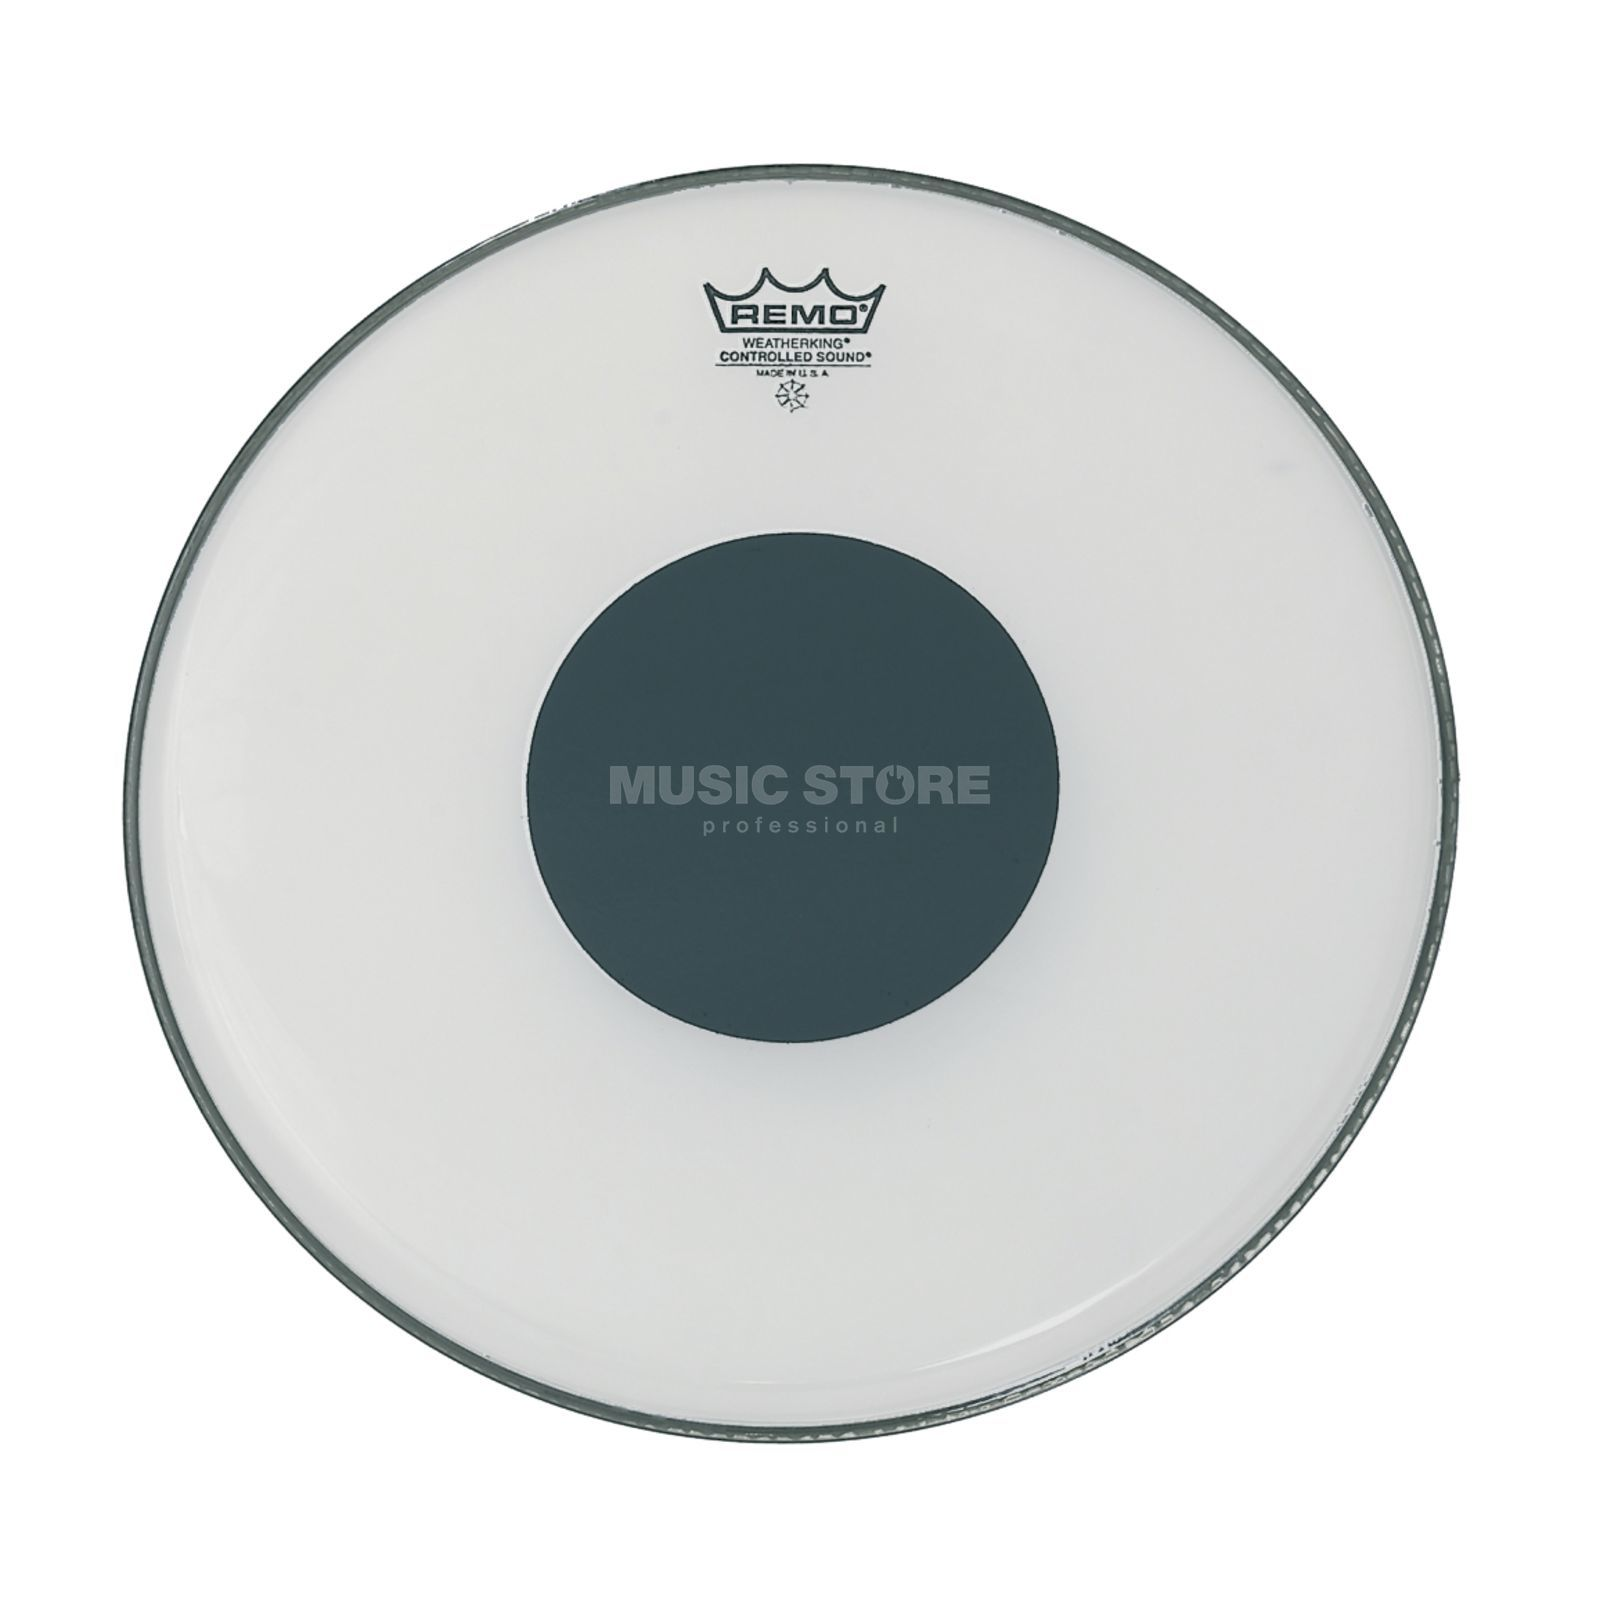 "Remo CS Ambassador White 20"", Black Dot, BassDrum Batter Product Image"